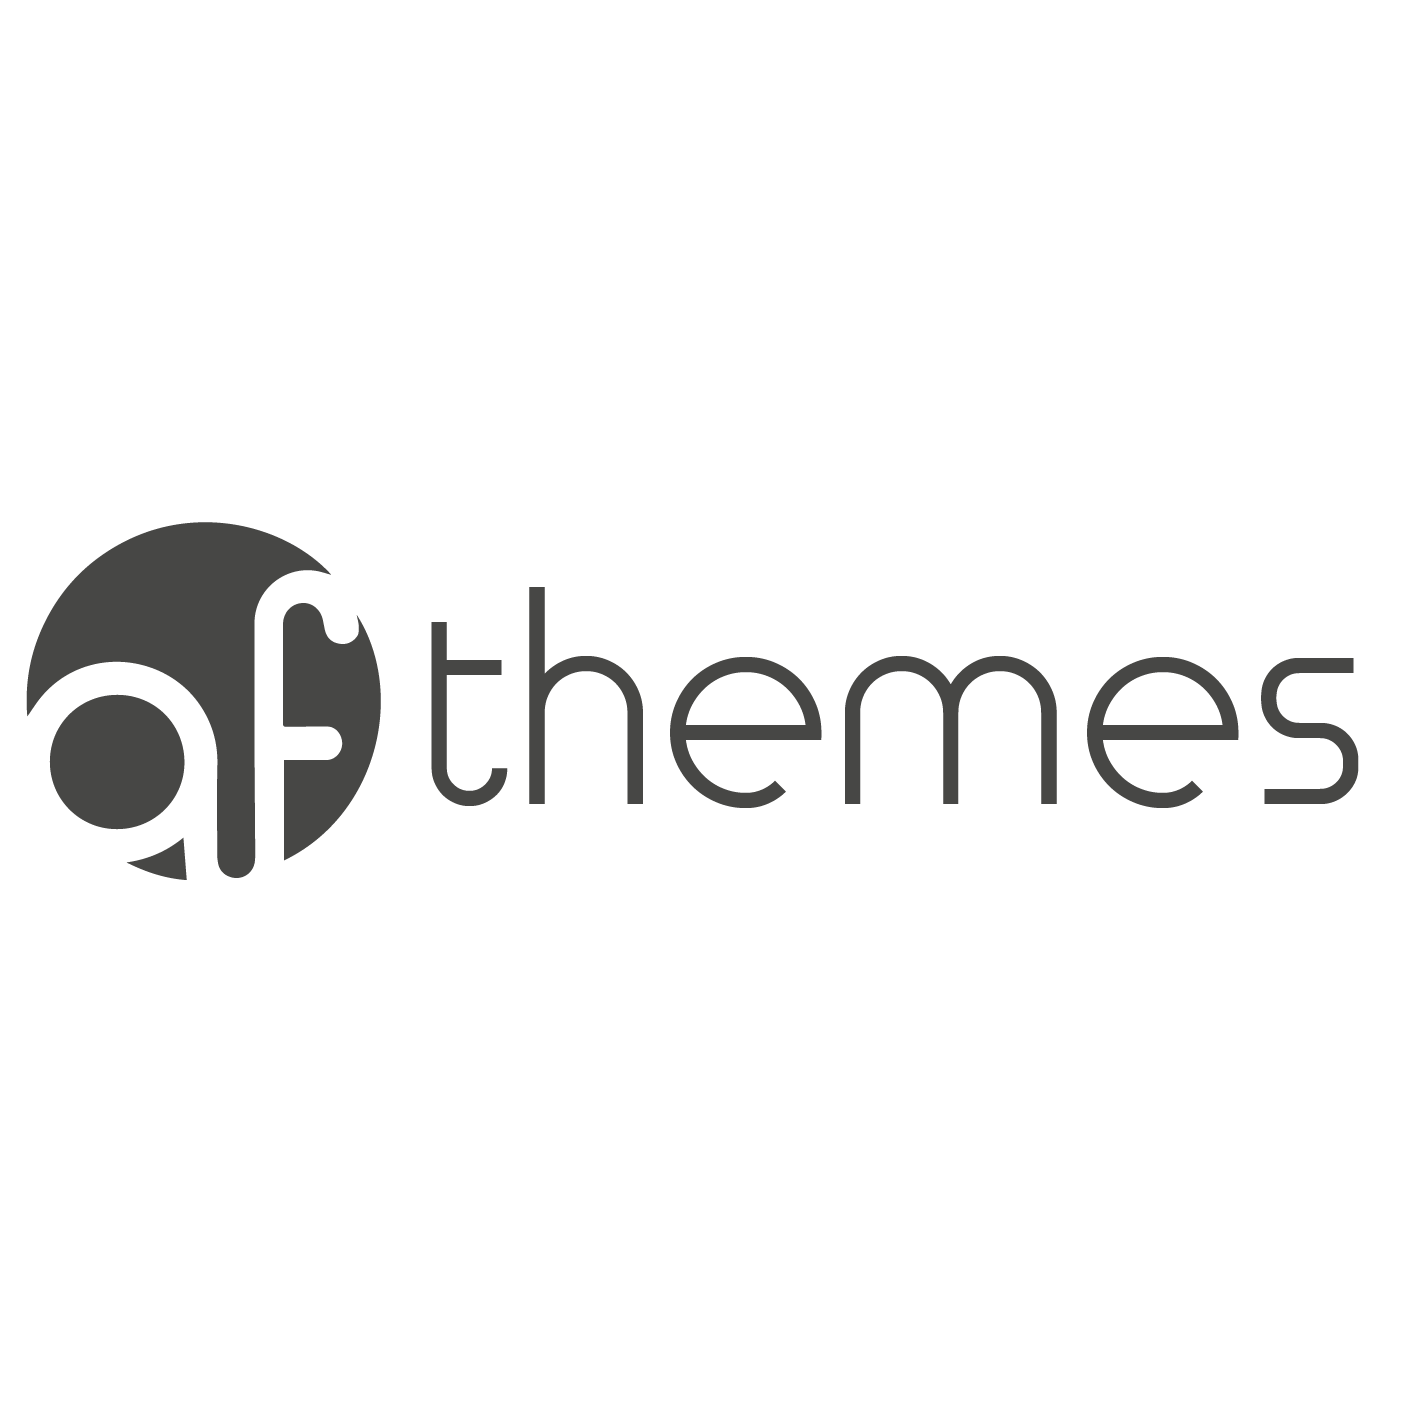 AF Themes Coupons and Promo Code